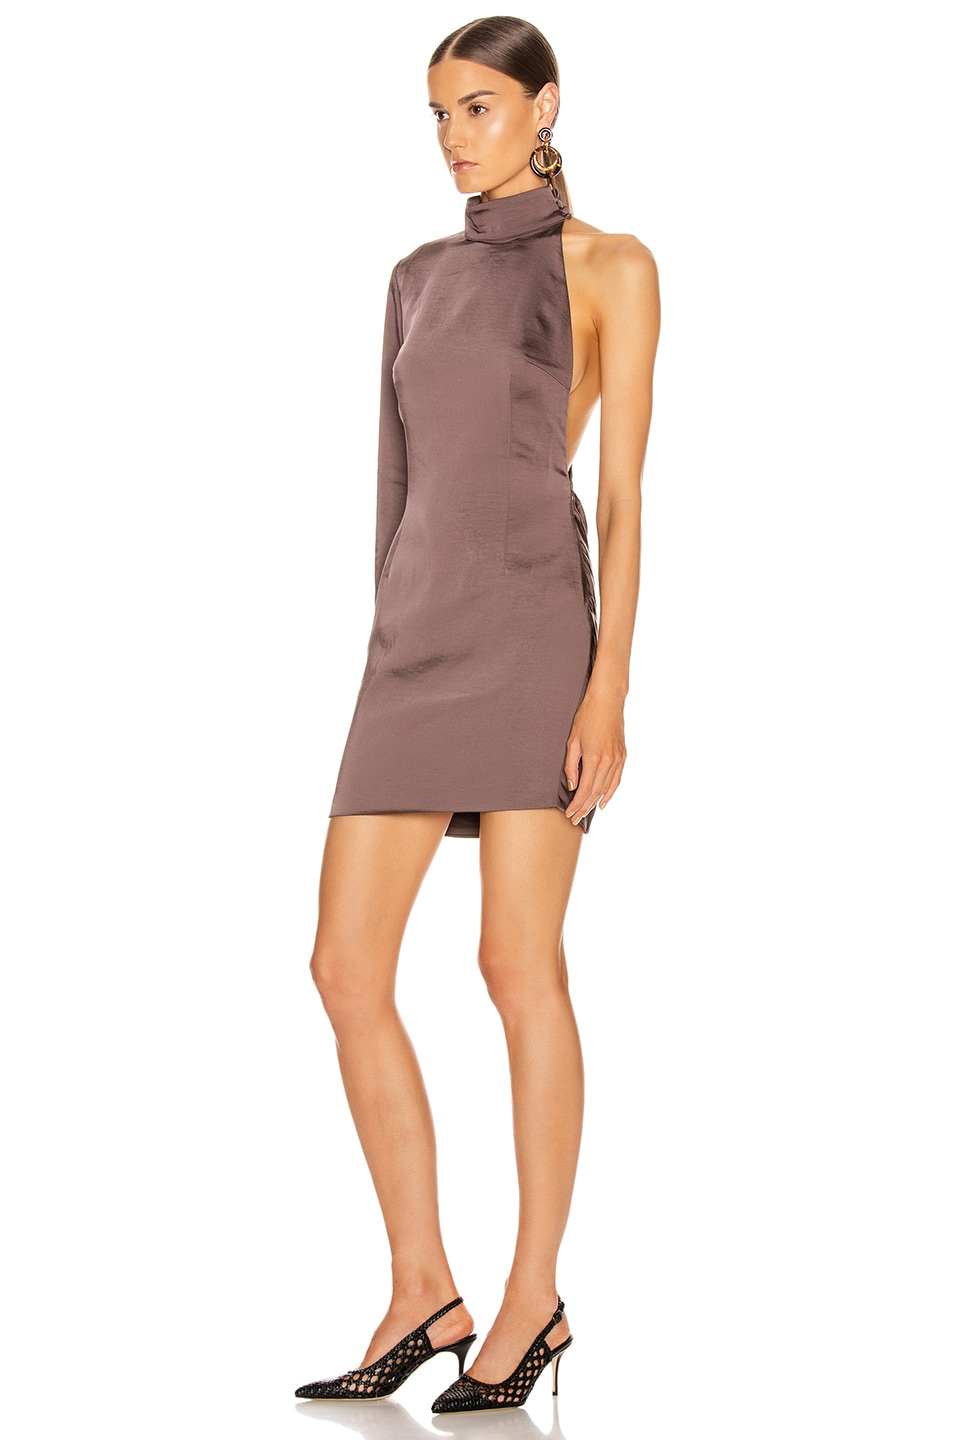 Image 3 of Atoir Negative Spaces Dress in Chocolate